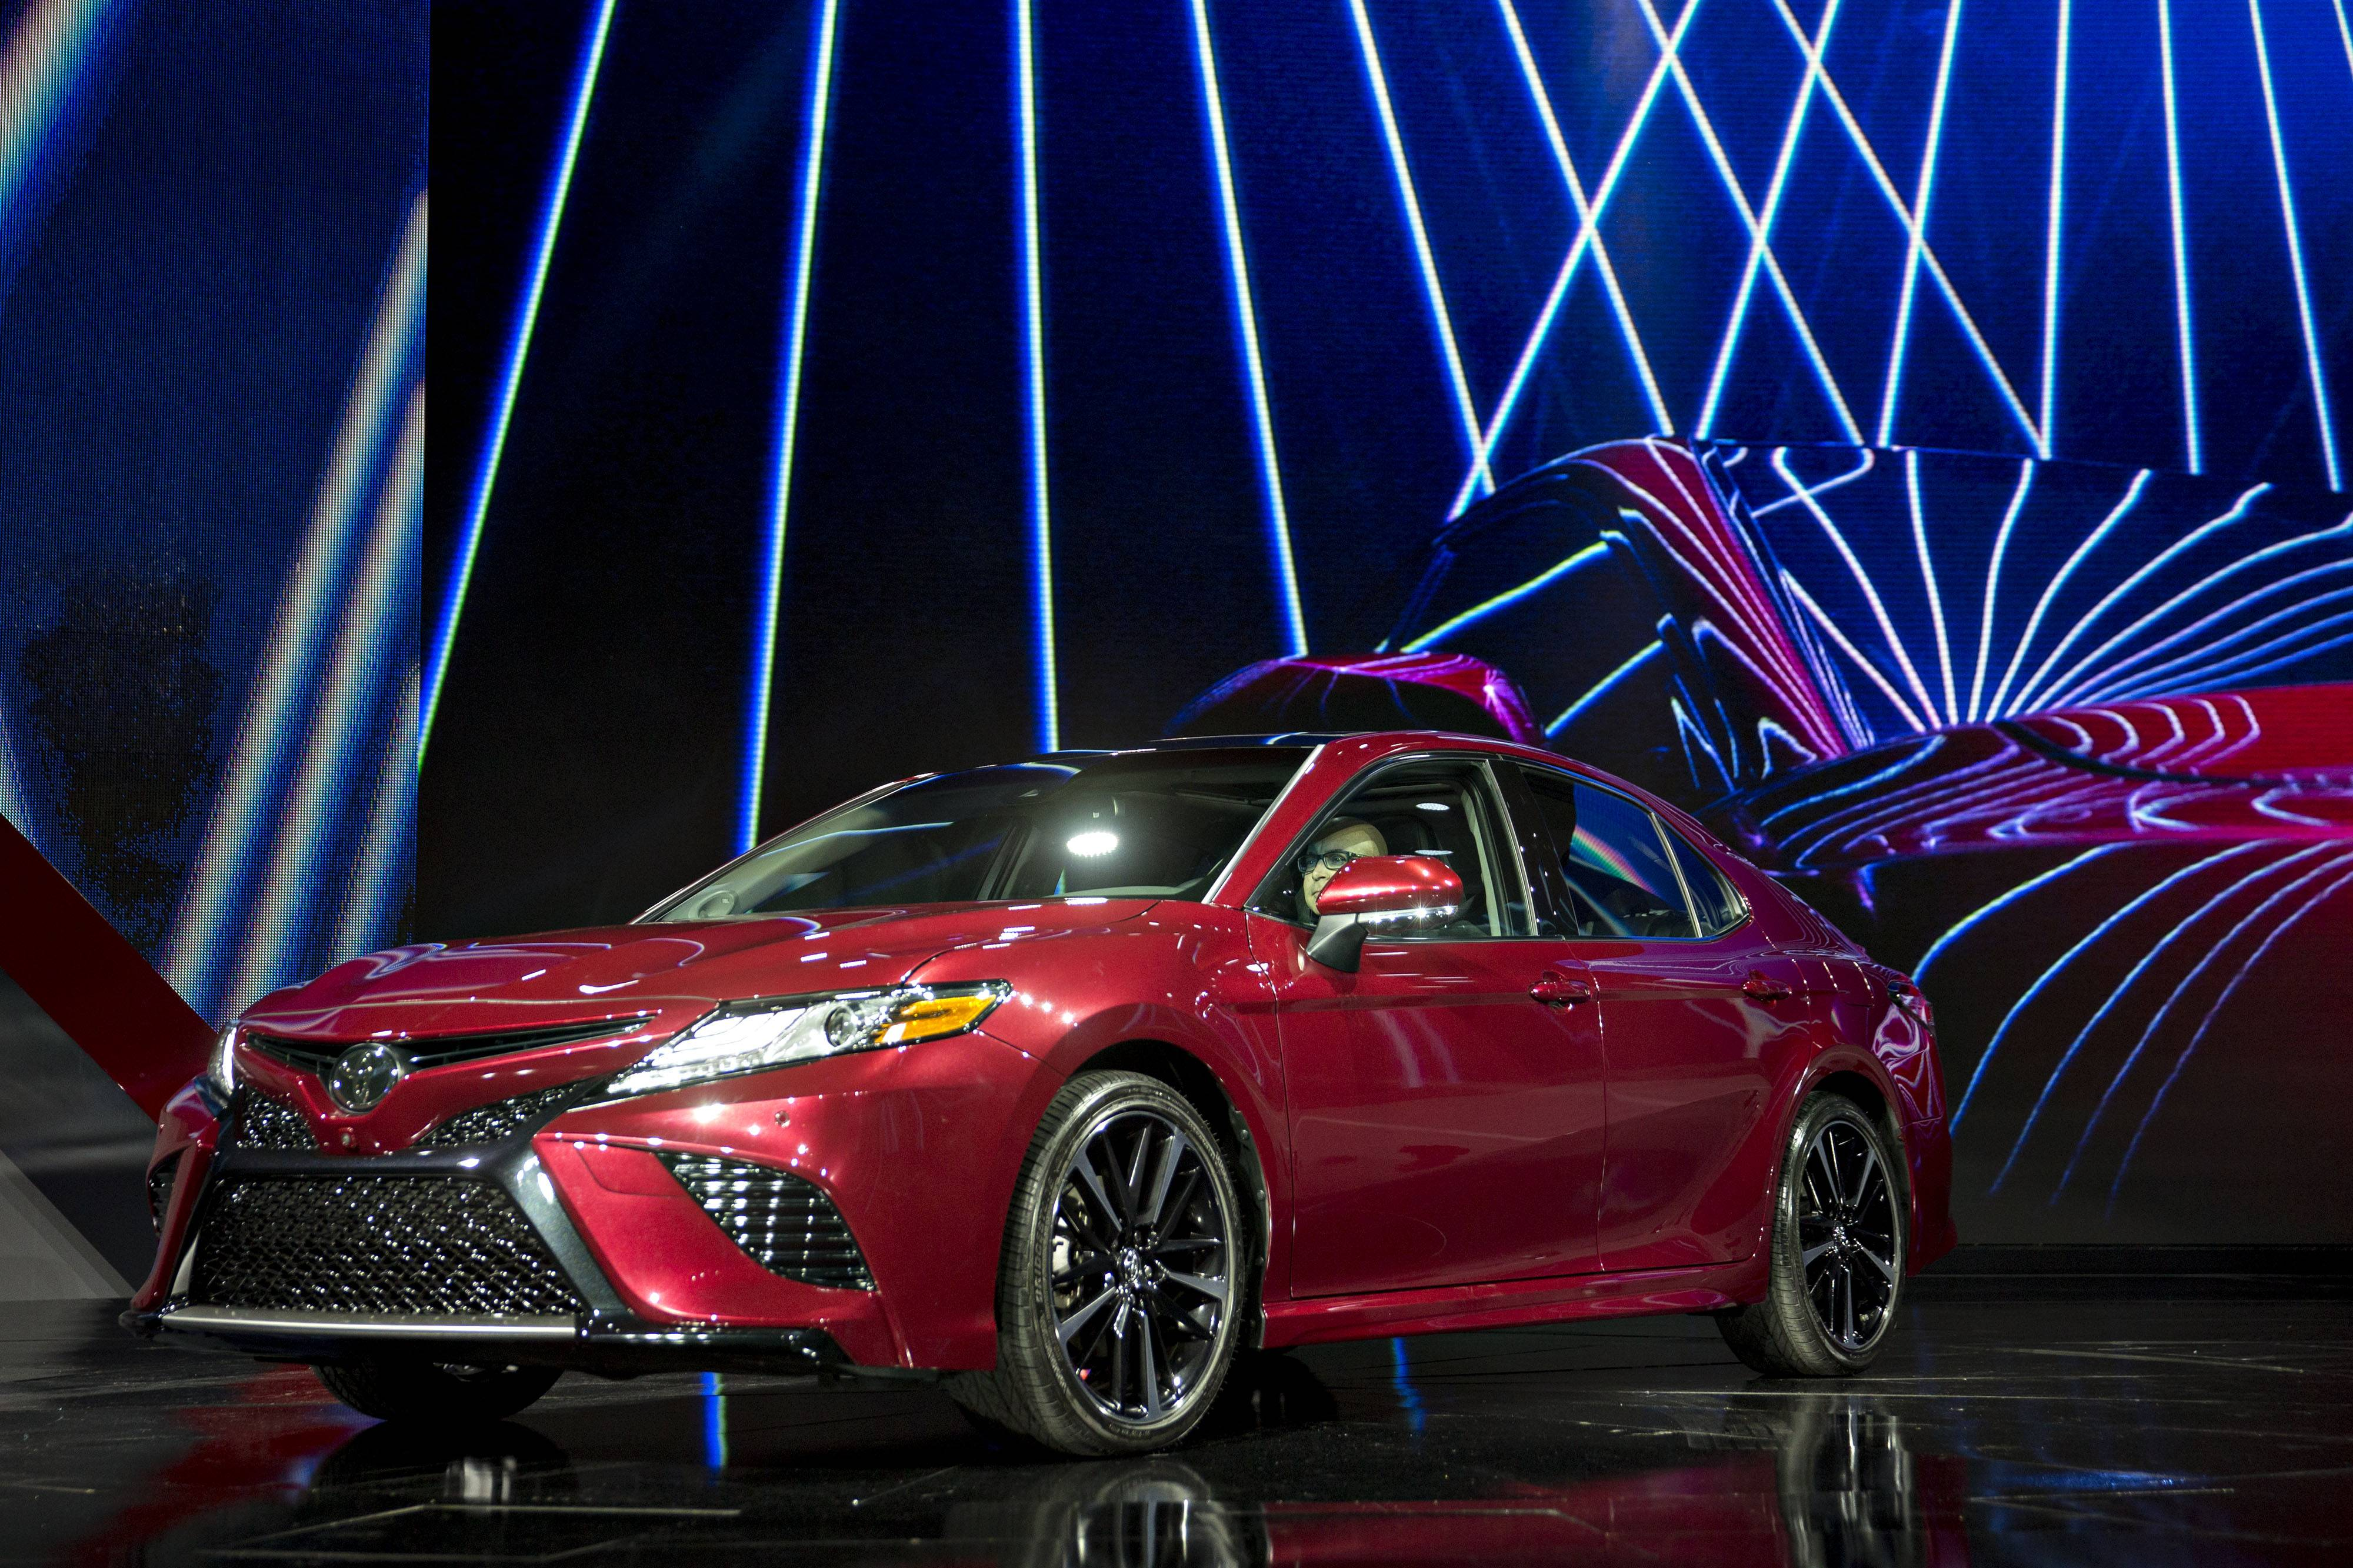 The 2018 Toyota Camry coming to the Chicago Auto Show is completely redesigned.